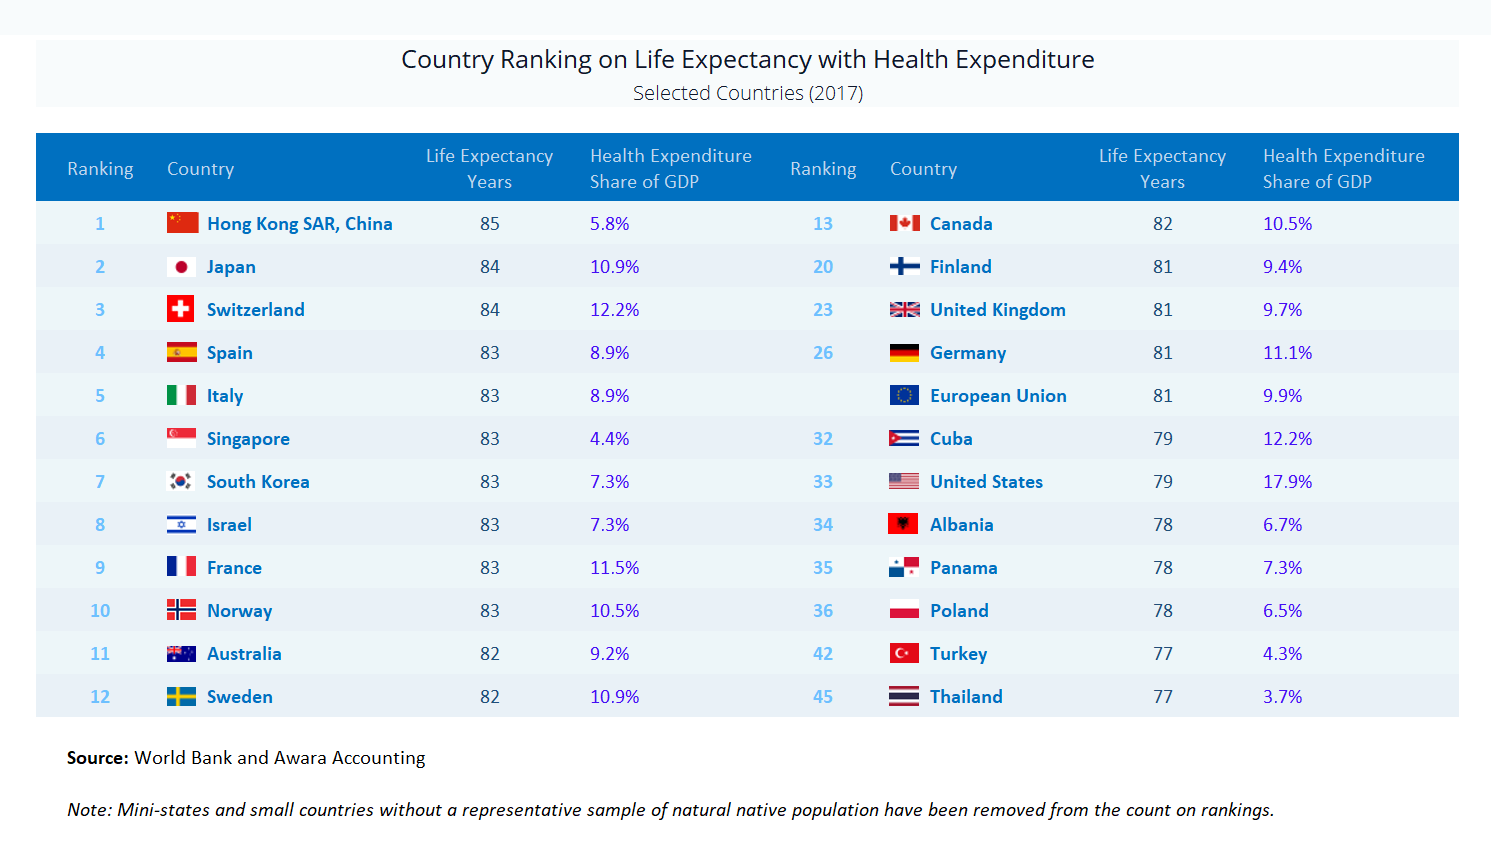 сountries by life expectancy and health expenditure